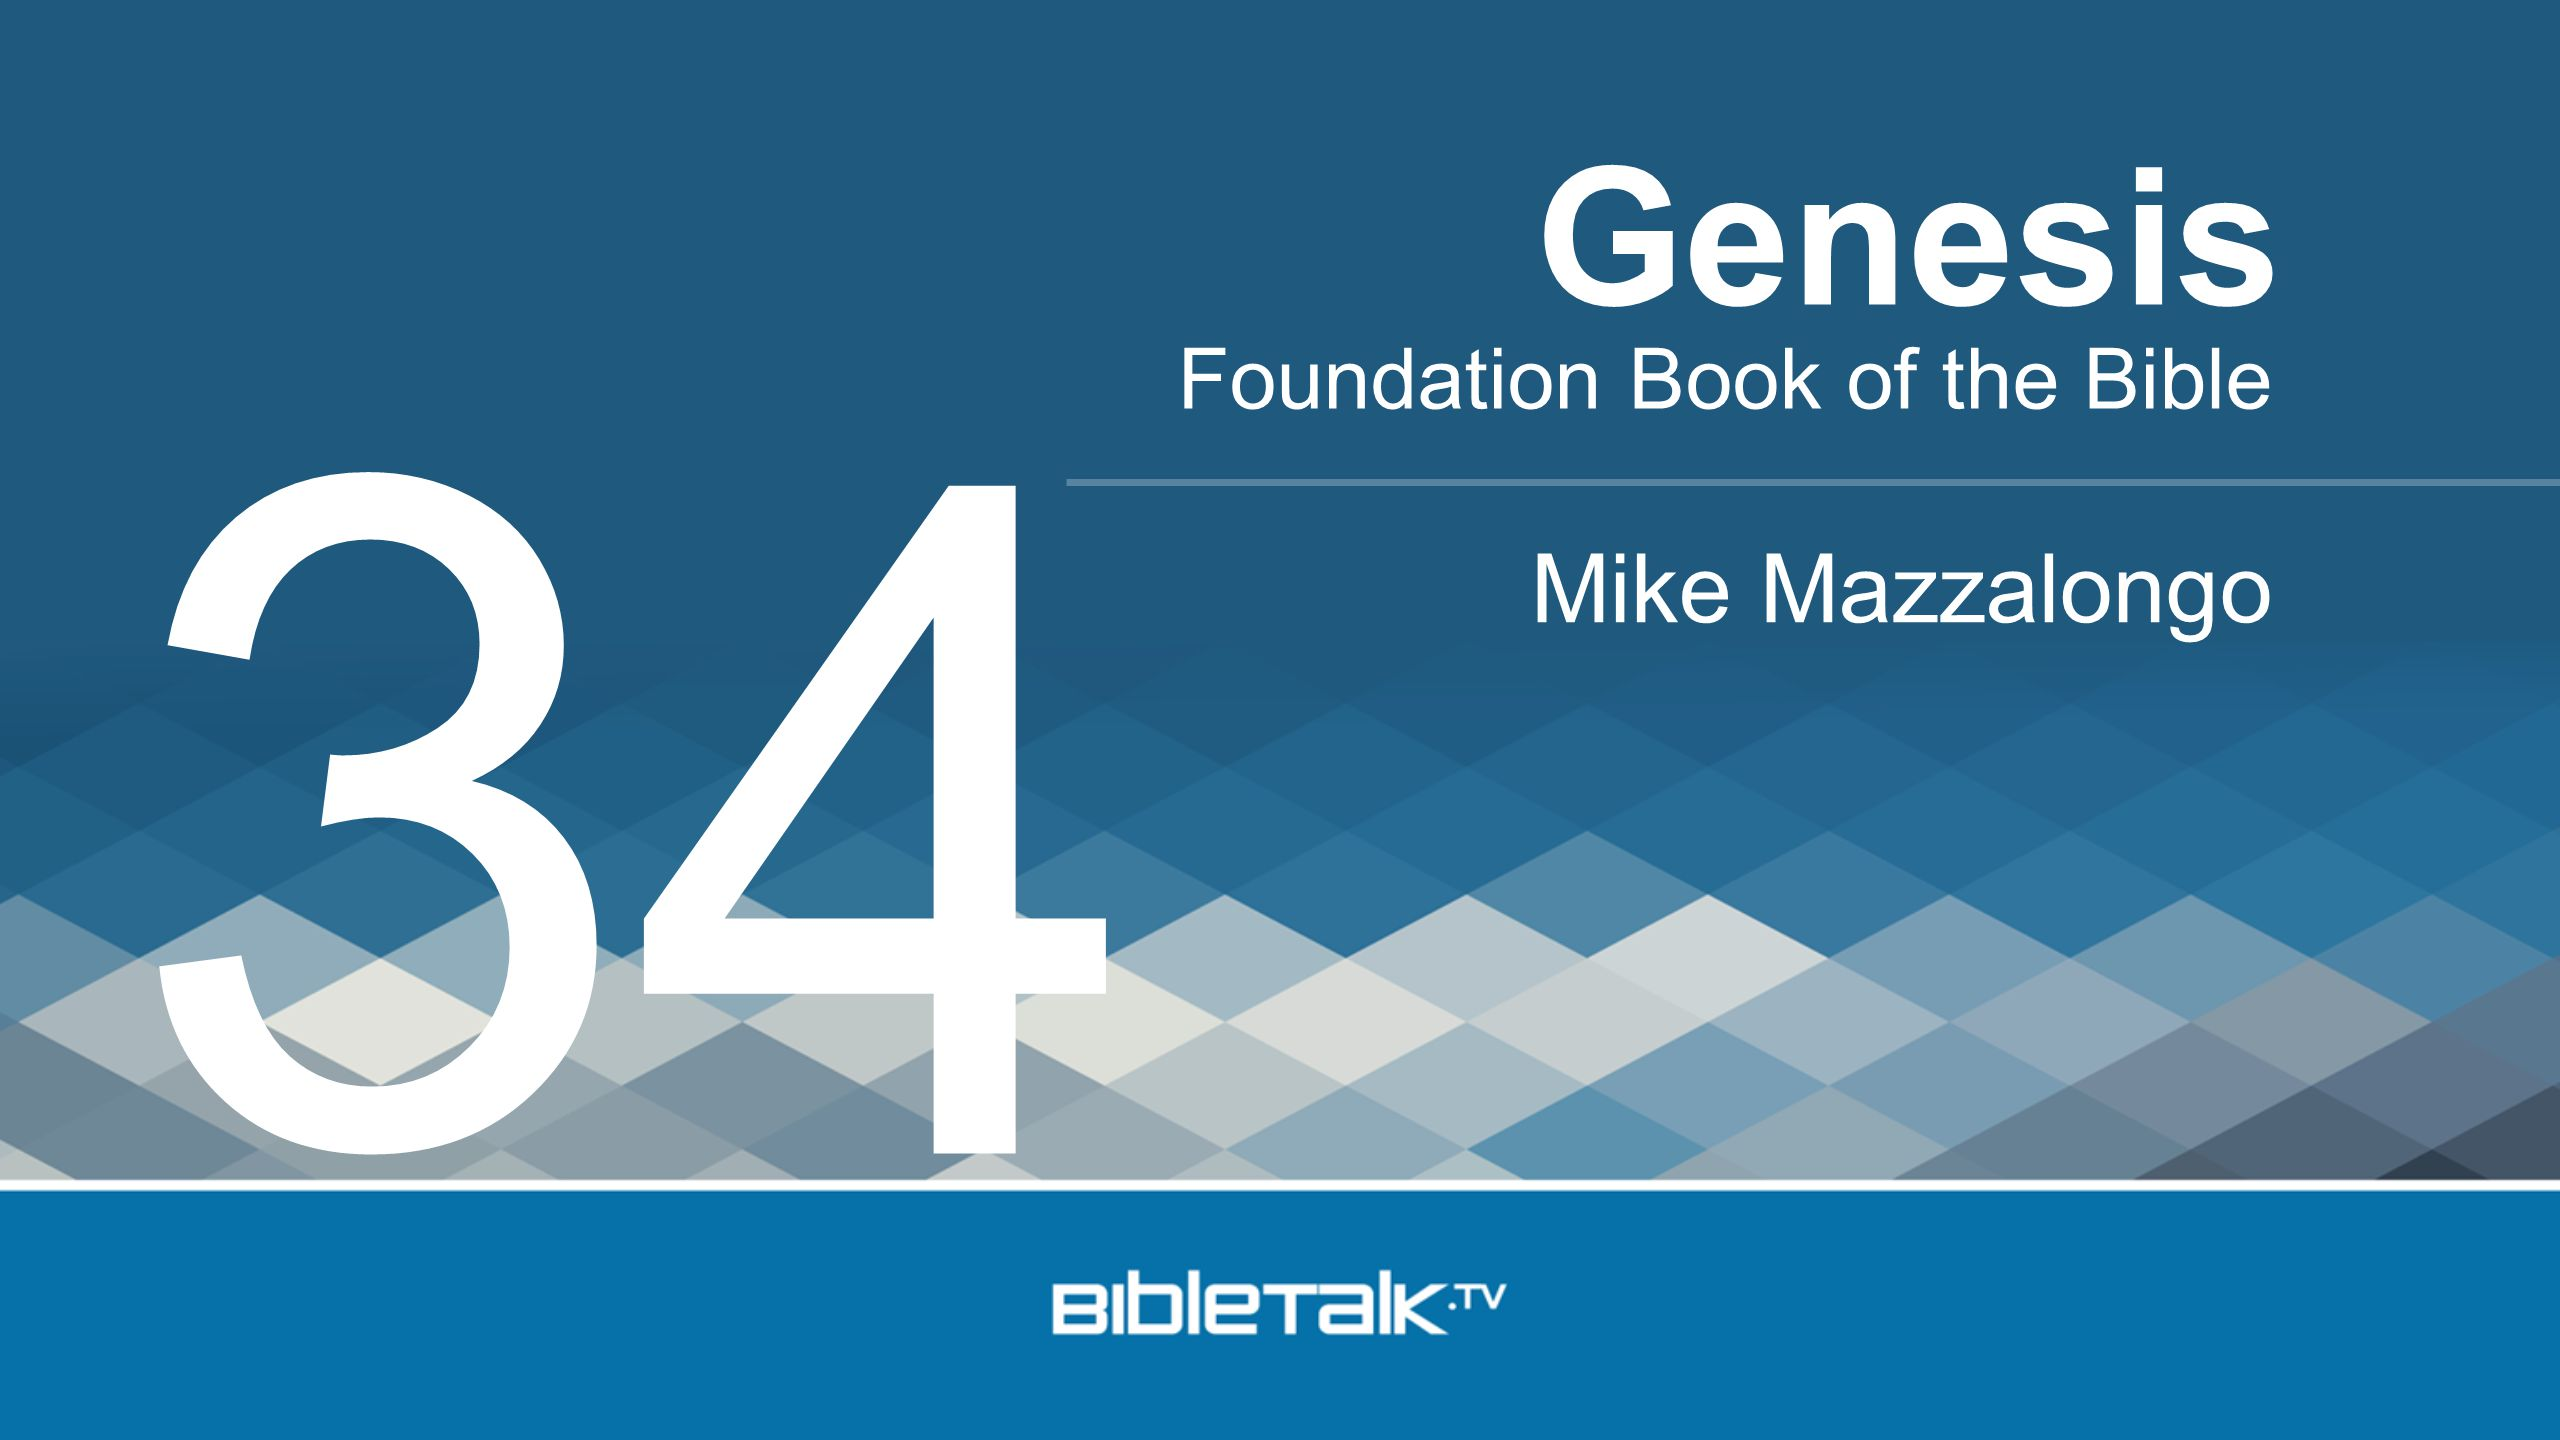 Foundation Book of the Bible Mike Mazzalongo Genesis 3 4